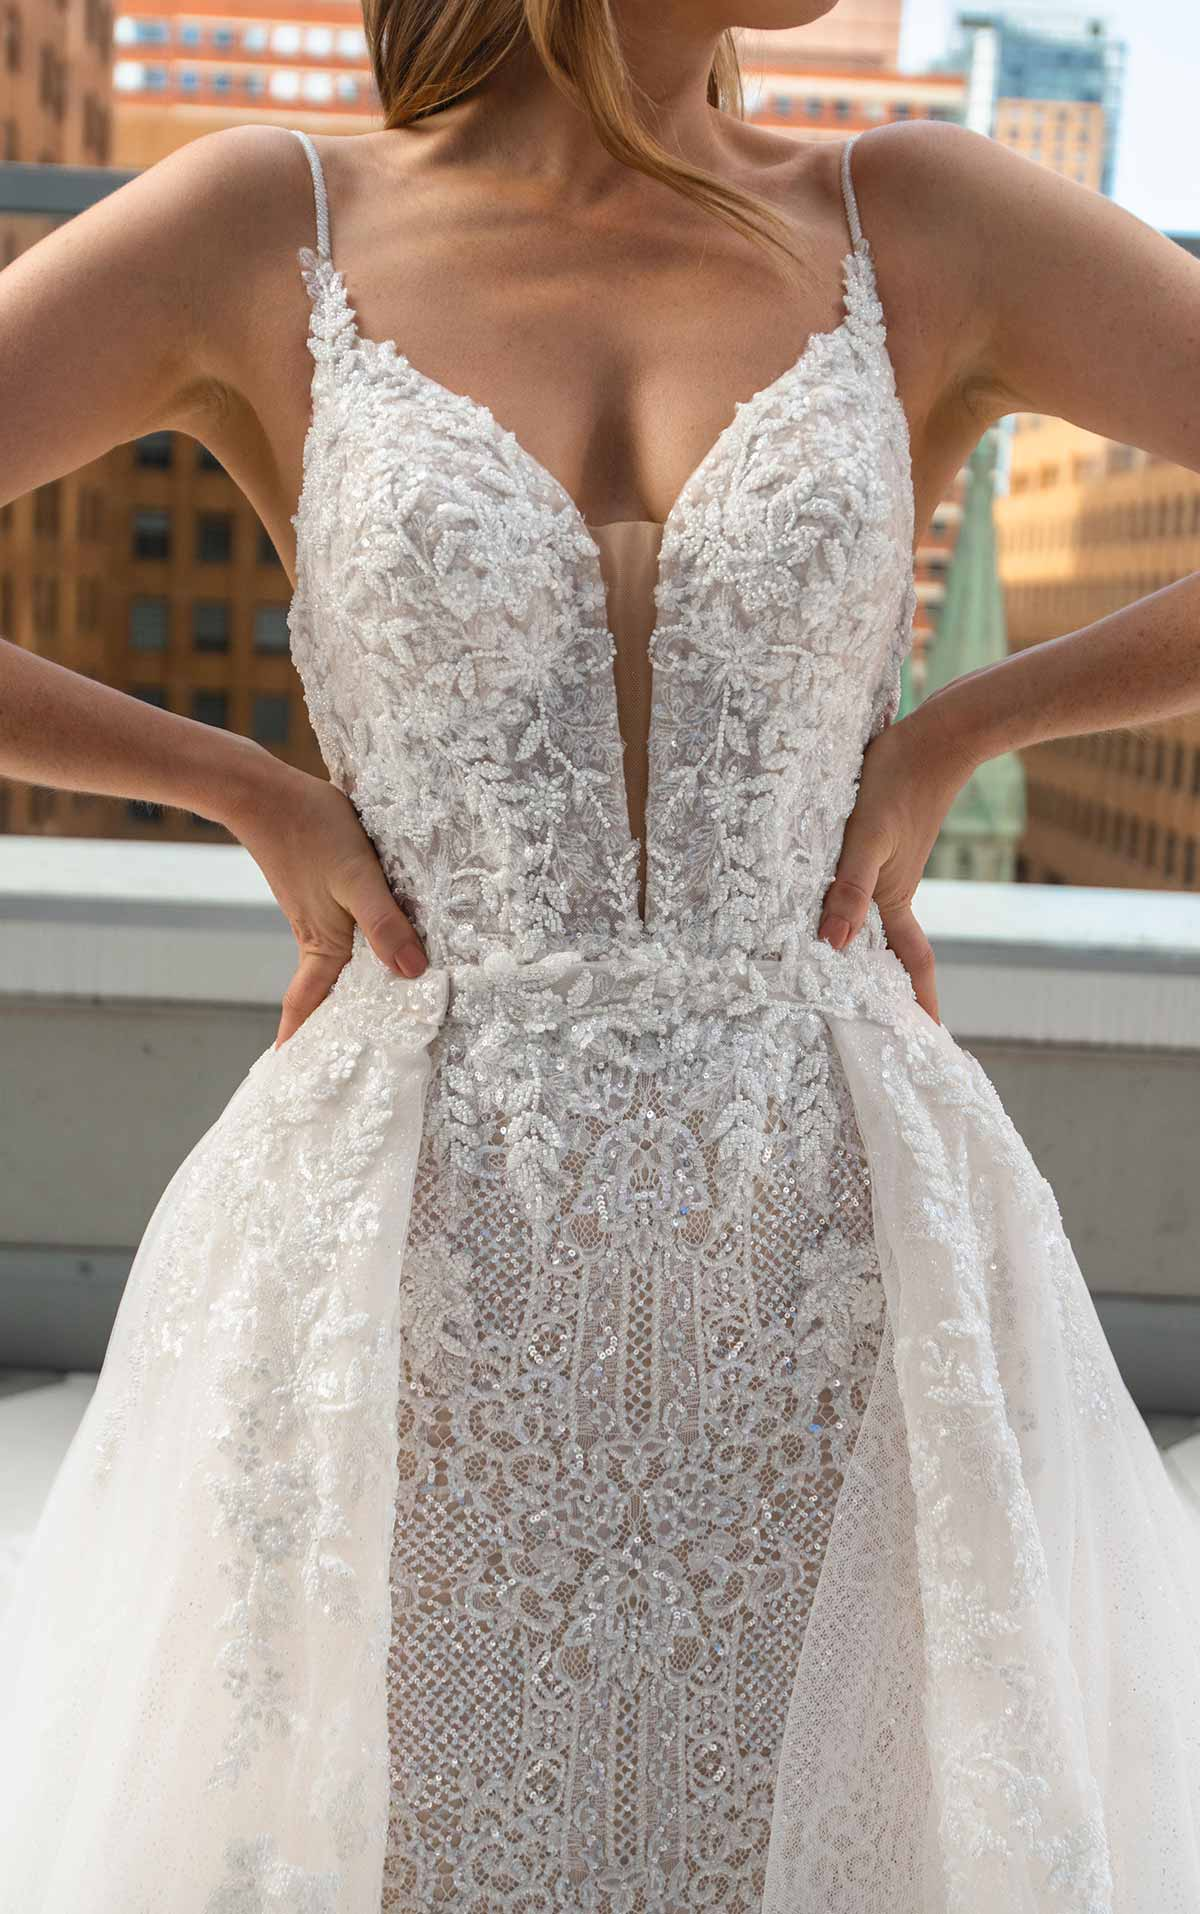 LE1125 Sleek Fit-and-Flare Beaded Wedding Gown with Overskirt by Martina Liana